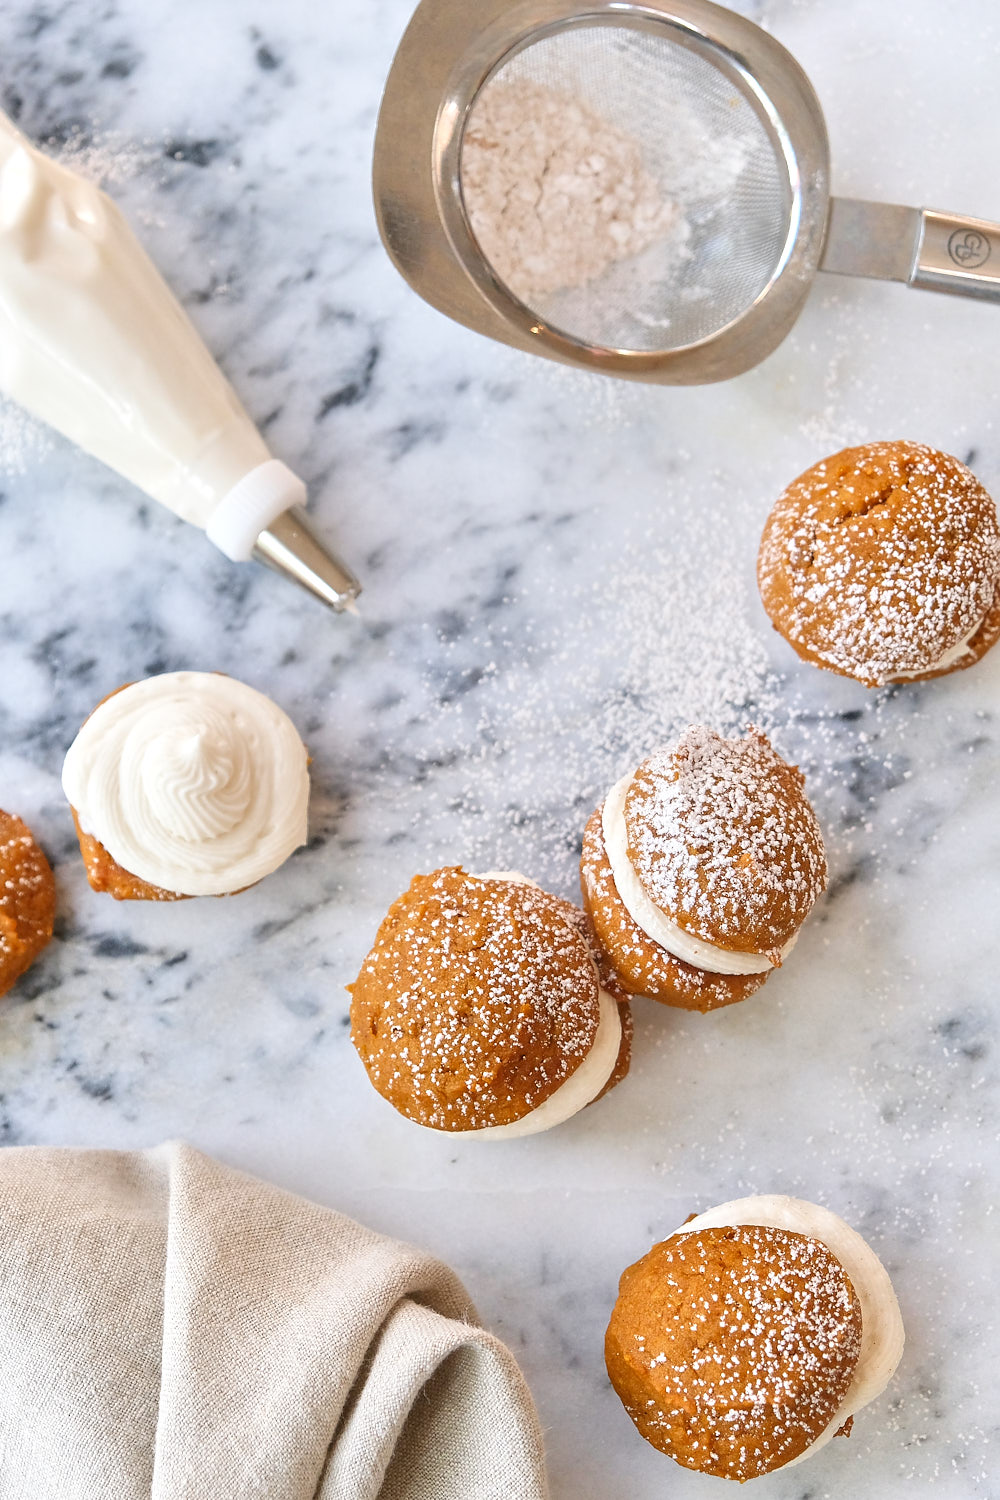 Mini pumpkin whoopie pies on table with a dusting of spices and powdered sugar.